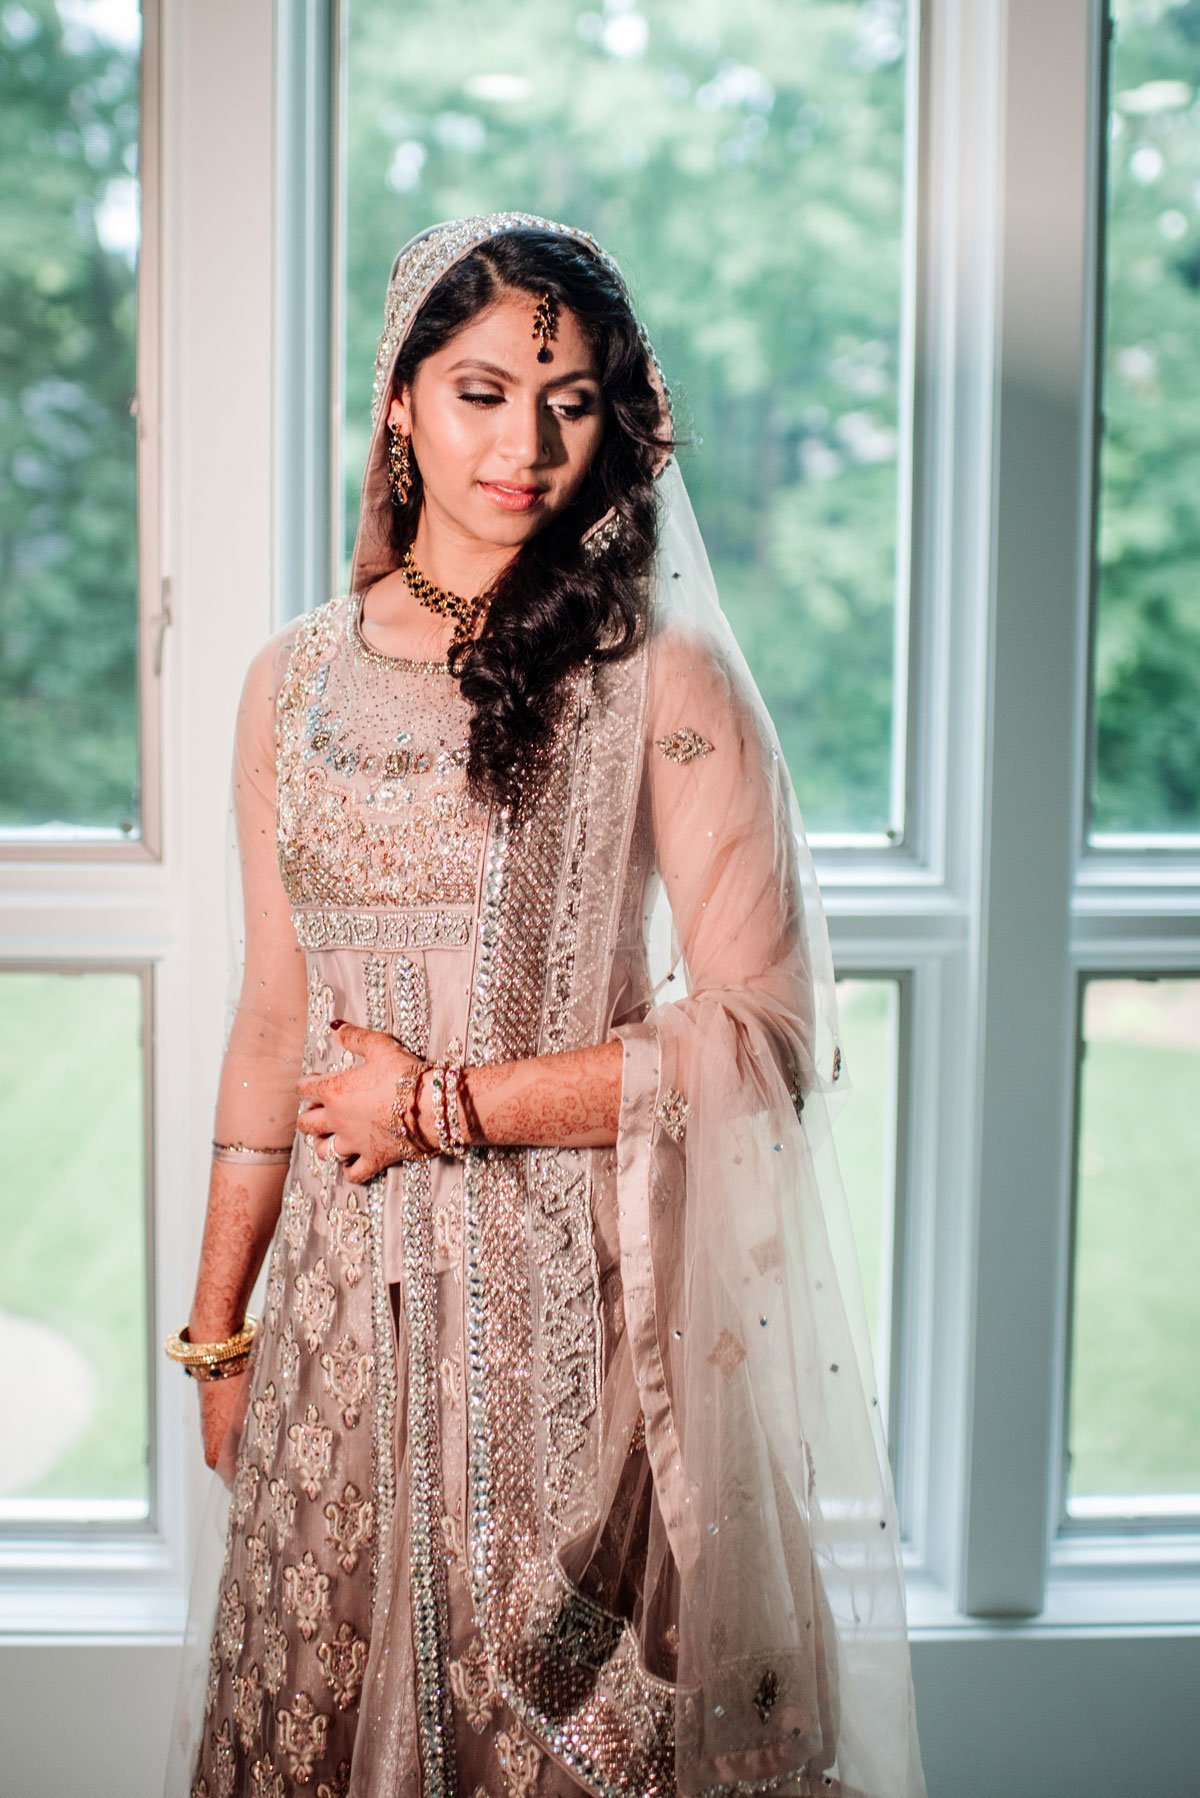 Bride in front of window with rose gold sari in Minneapolis